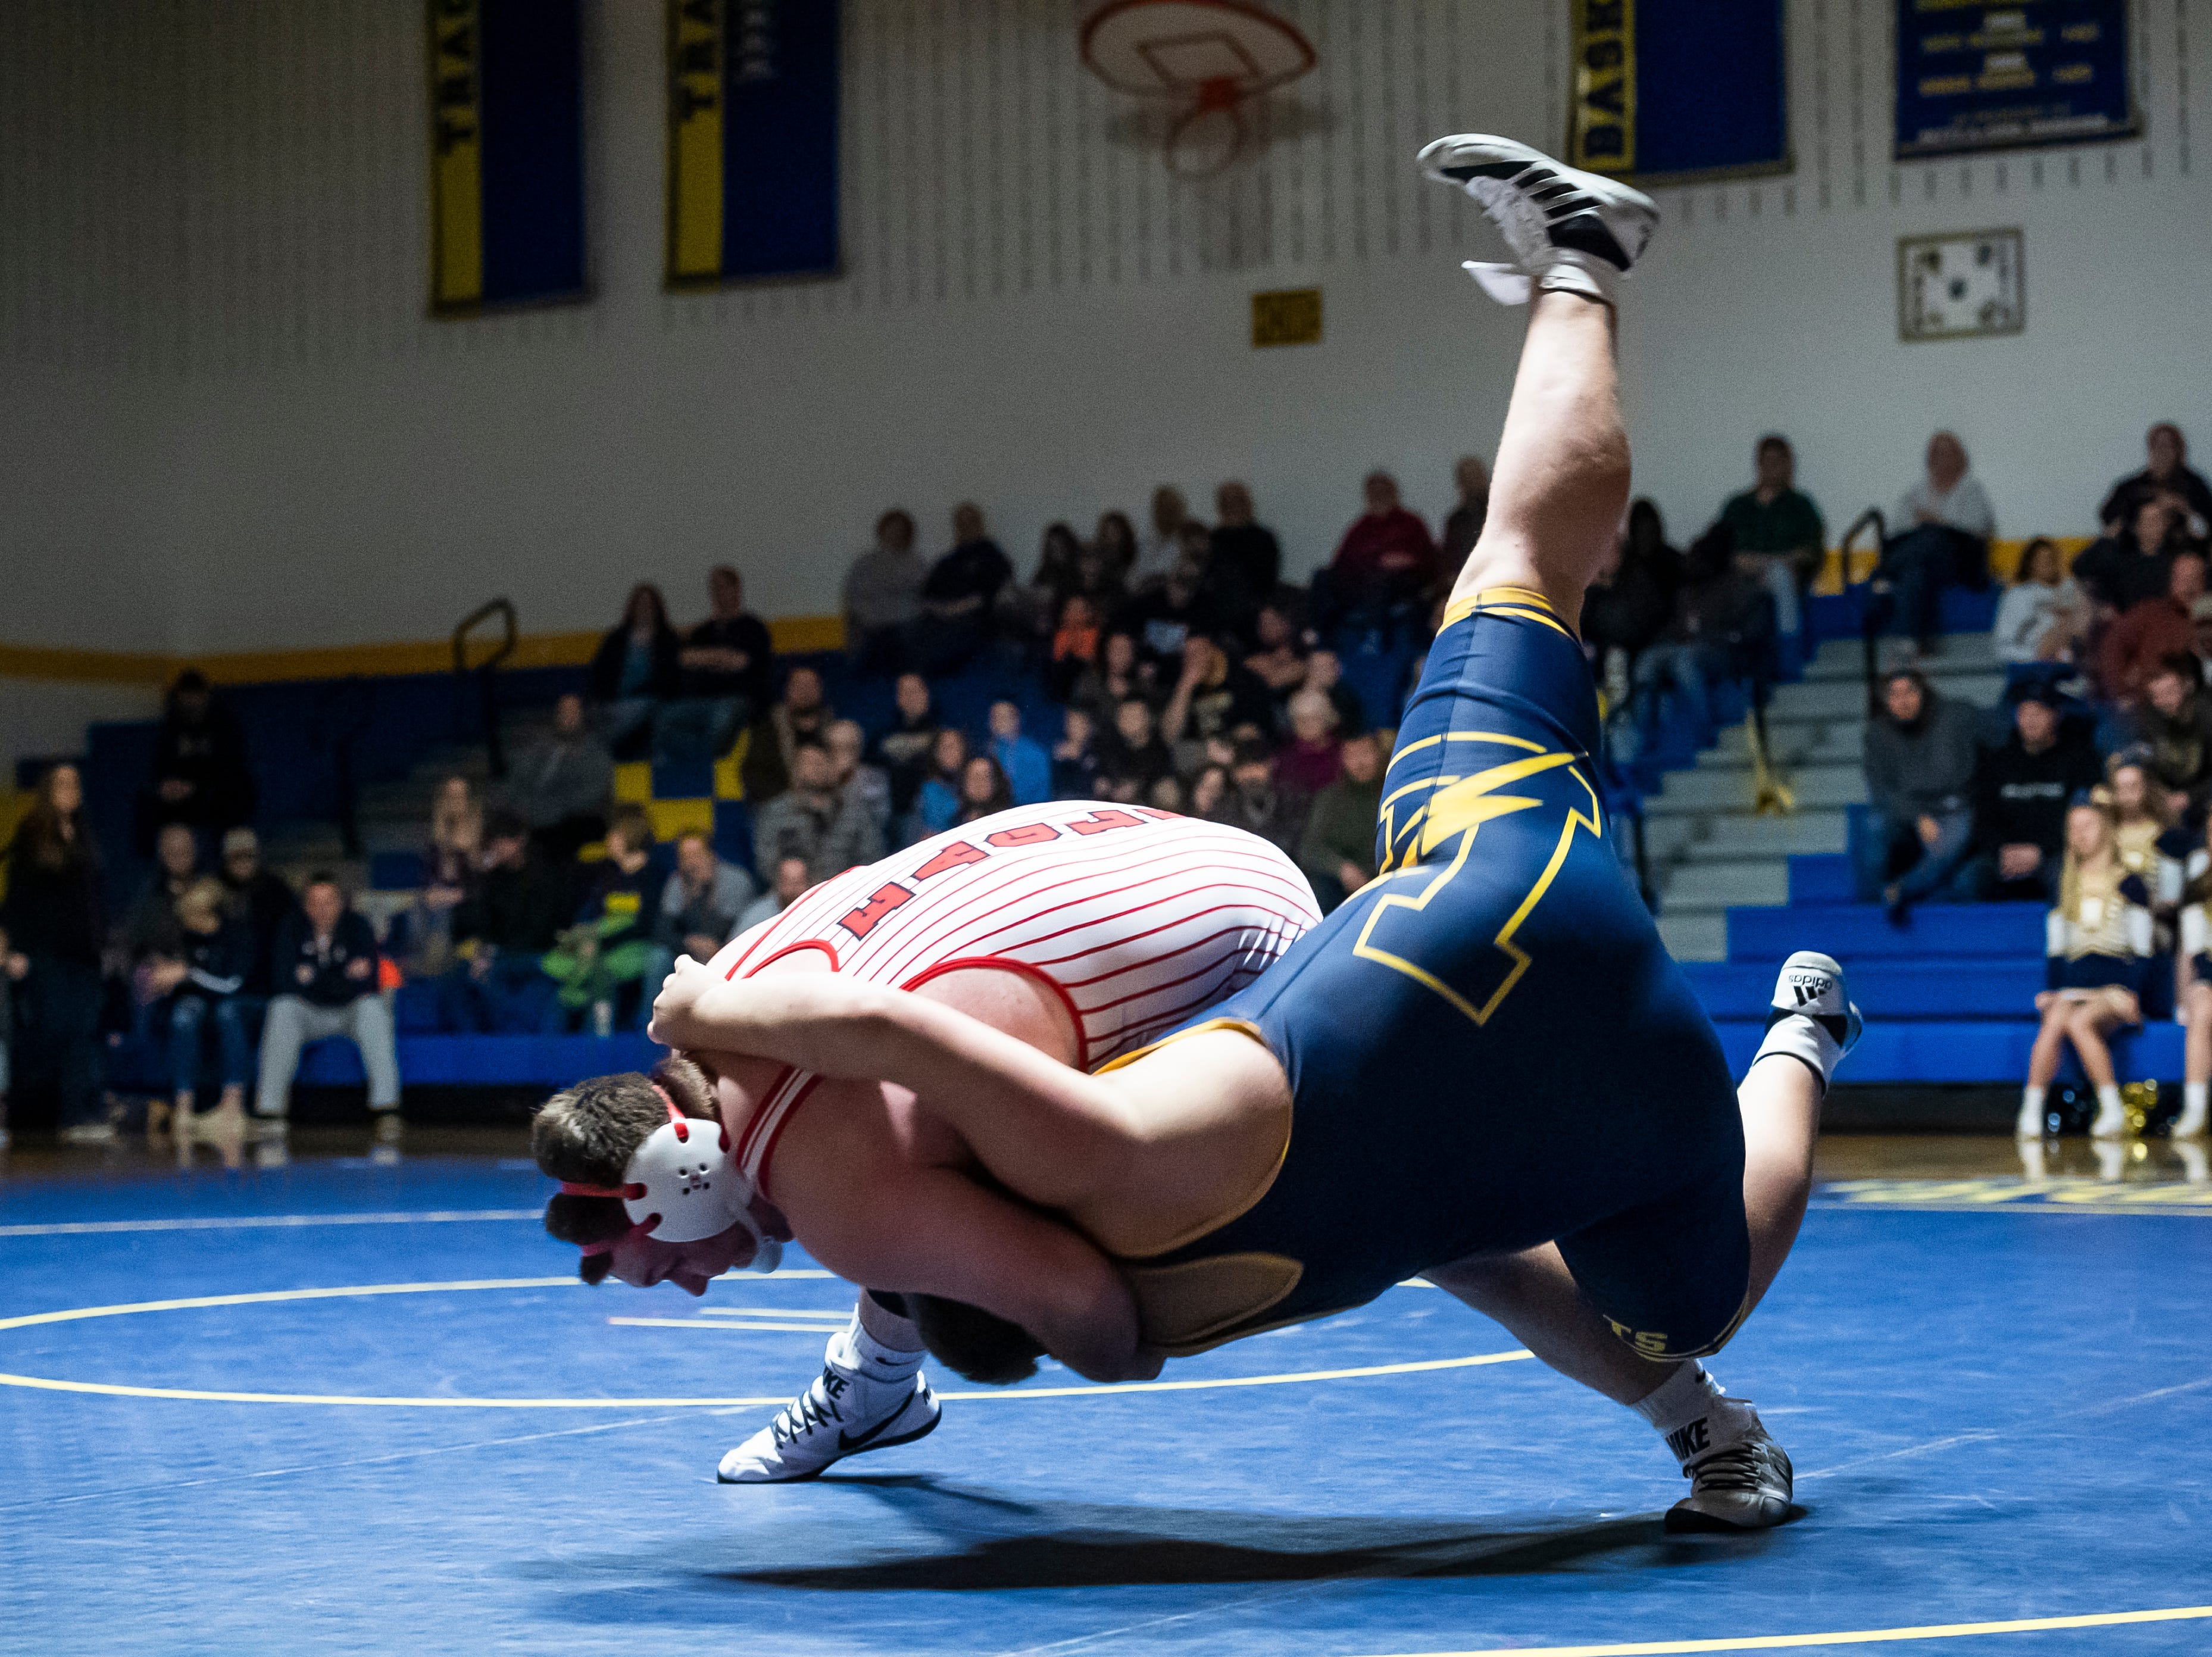 Bermudian Springs' Ryan Lauver (top) wrestles Littlestown's Cordell Irwin in the 285-pound bout on Thursday, January 24, 2019. Lauver won by pin as the Eagles captured the YAIAA Division 3 title with a 62-12 win.